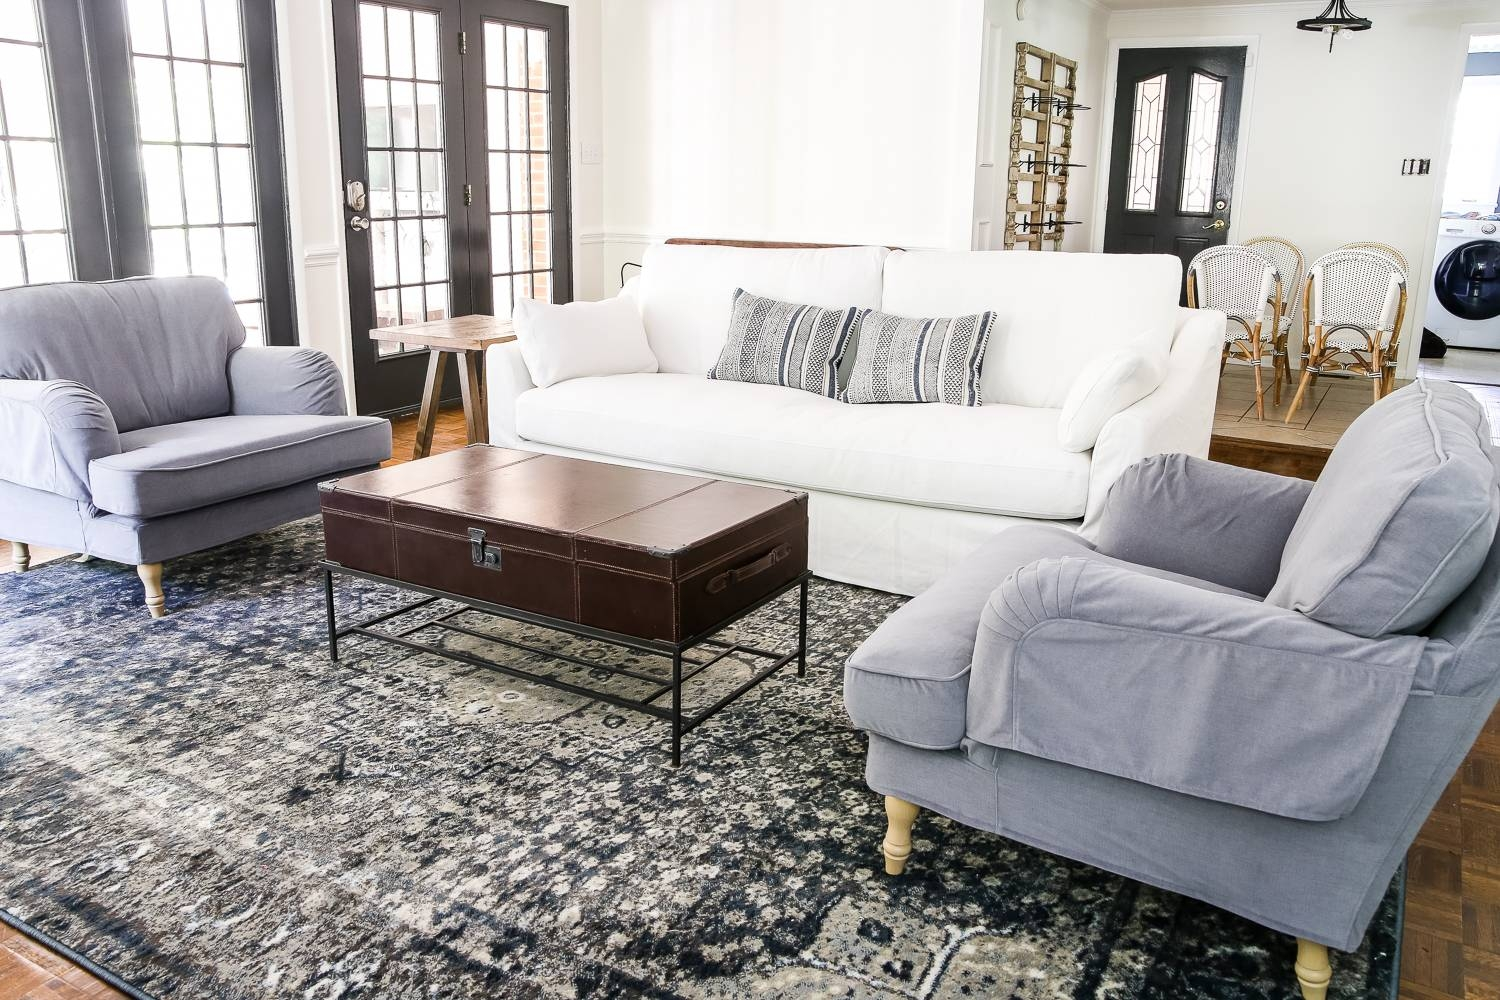 Ikea's New Sofa And Chairs And How To Keep Them Clean - Bless'er House with Comfortable Sofas And Chairs (Image 7 of 30)